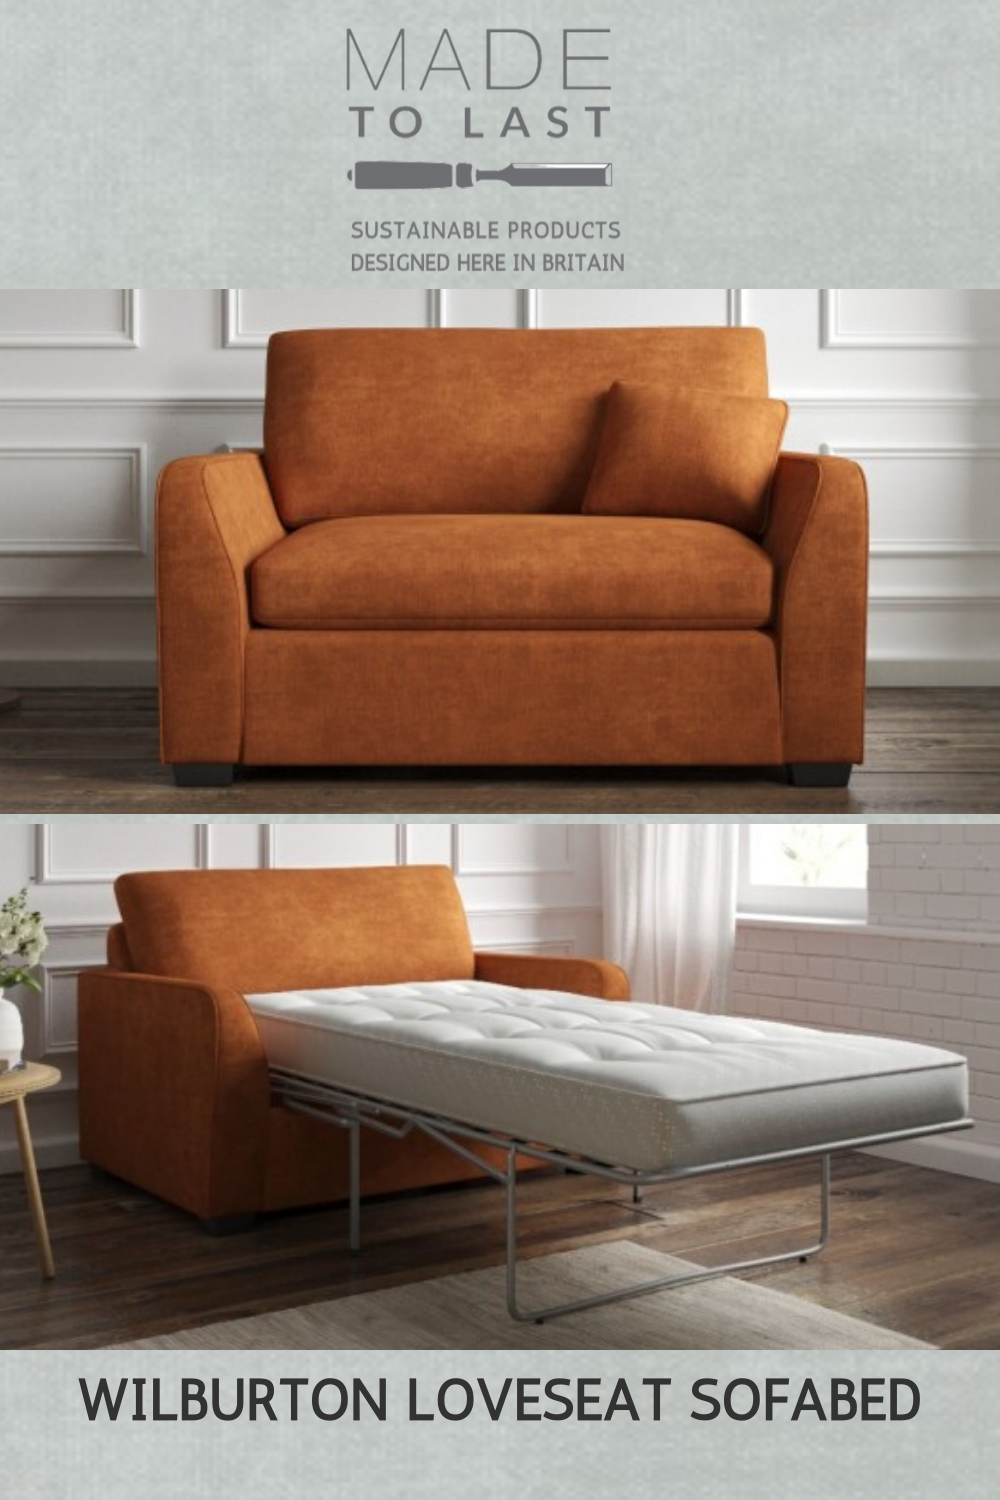 Wilburton Loveseat Sofabed in 2020 Love seat, Sofa bed